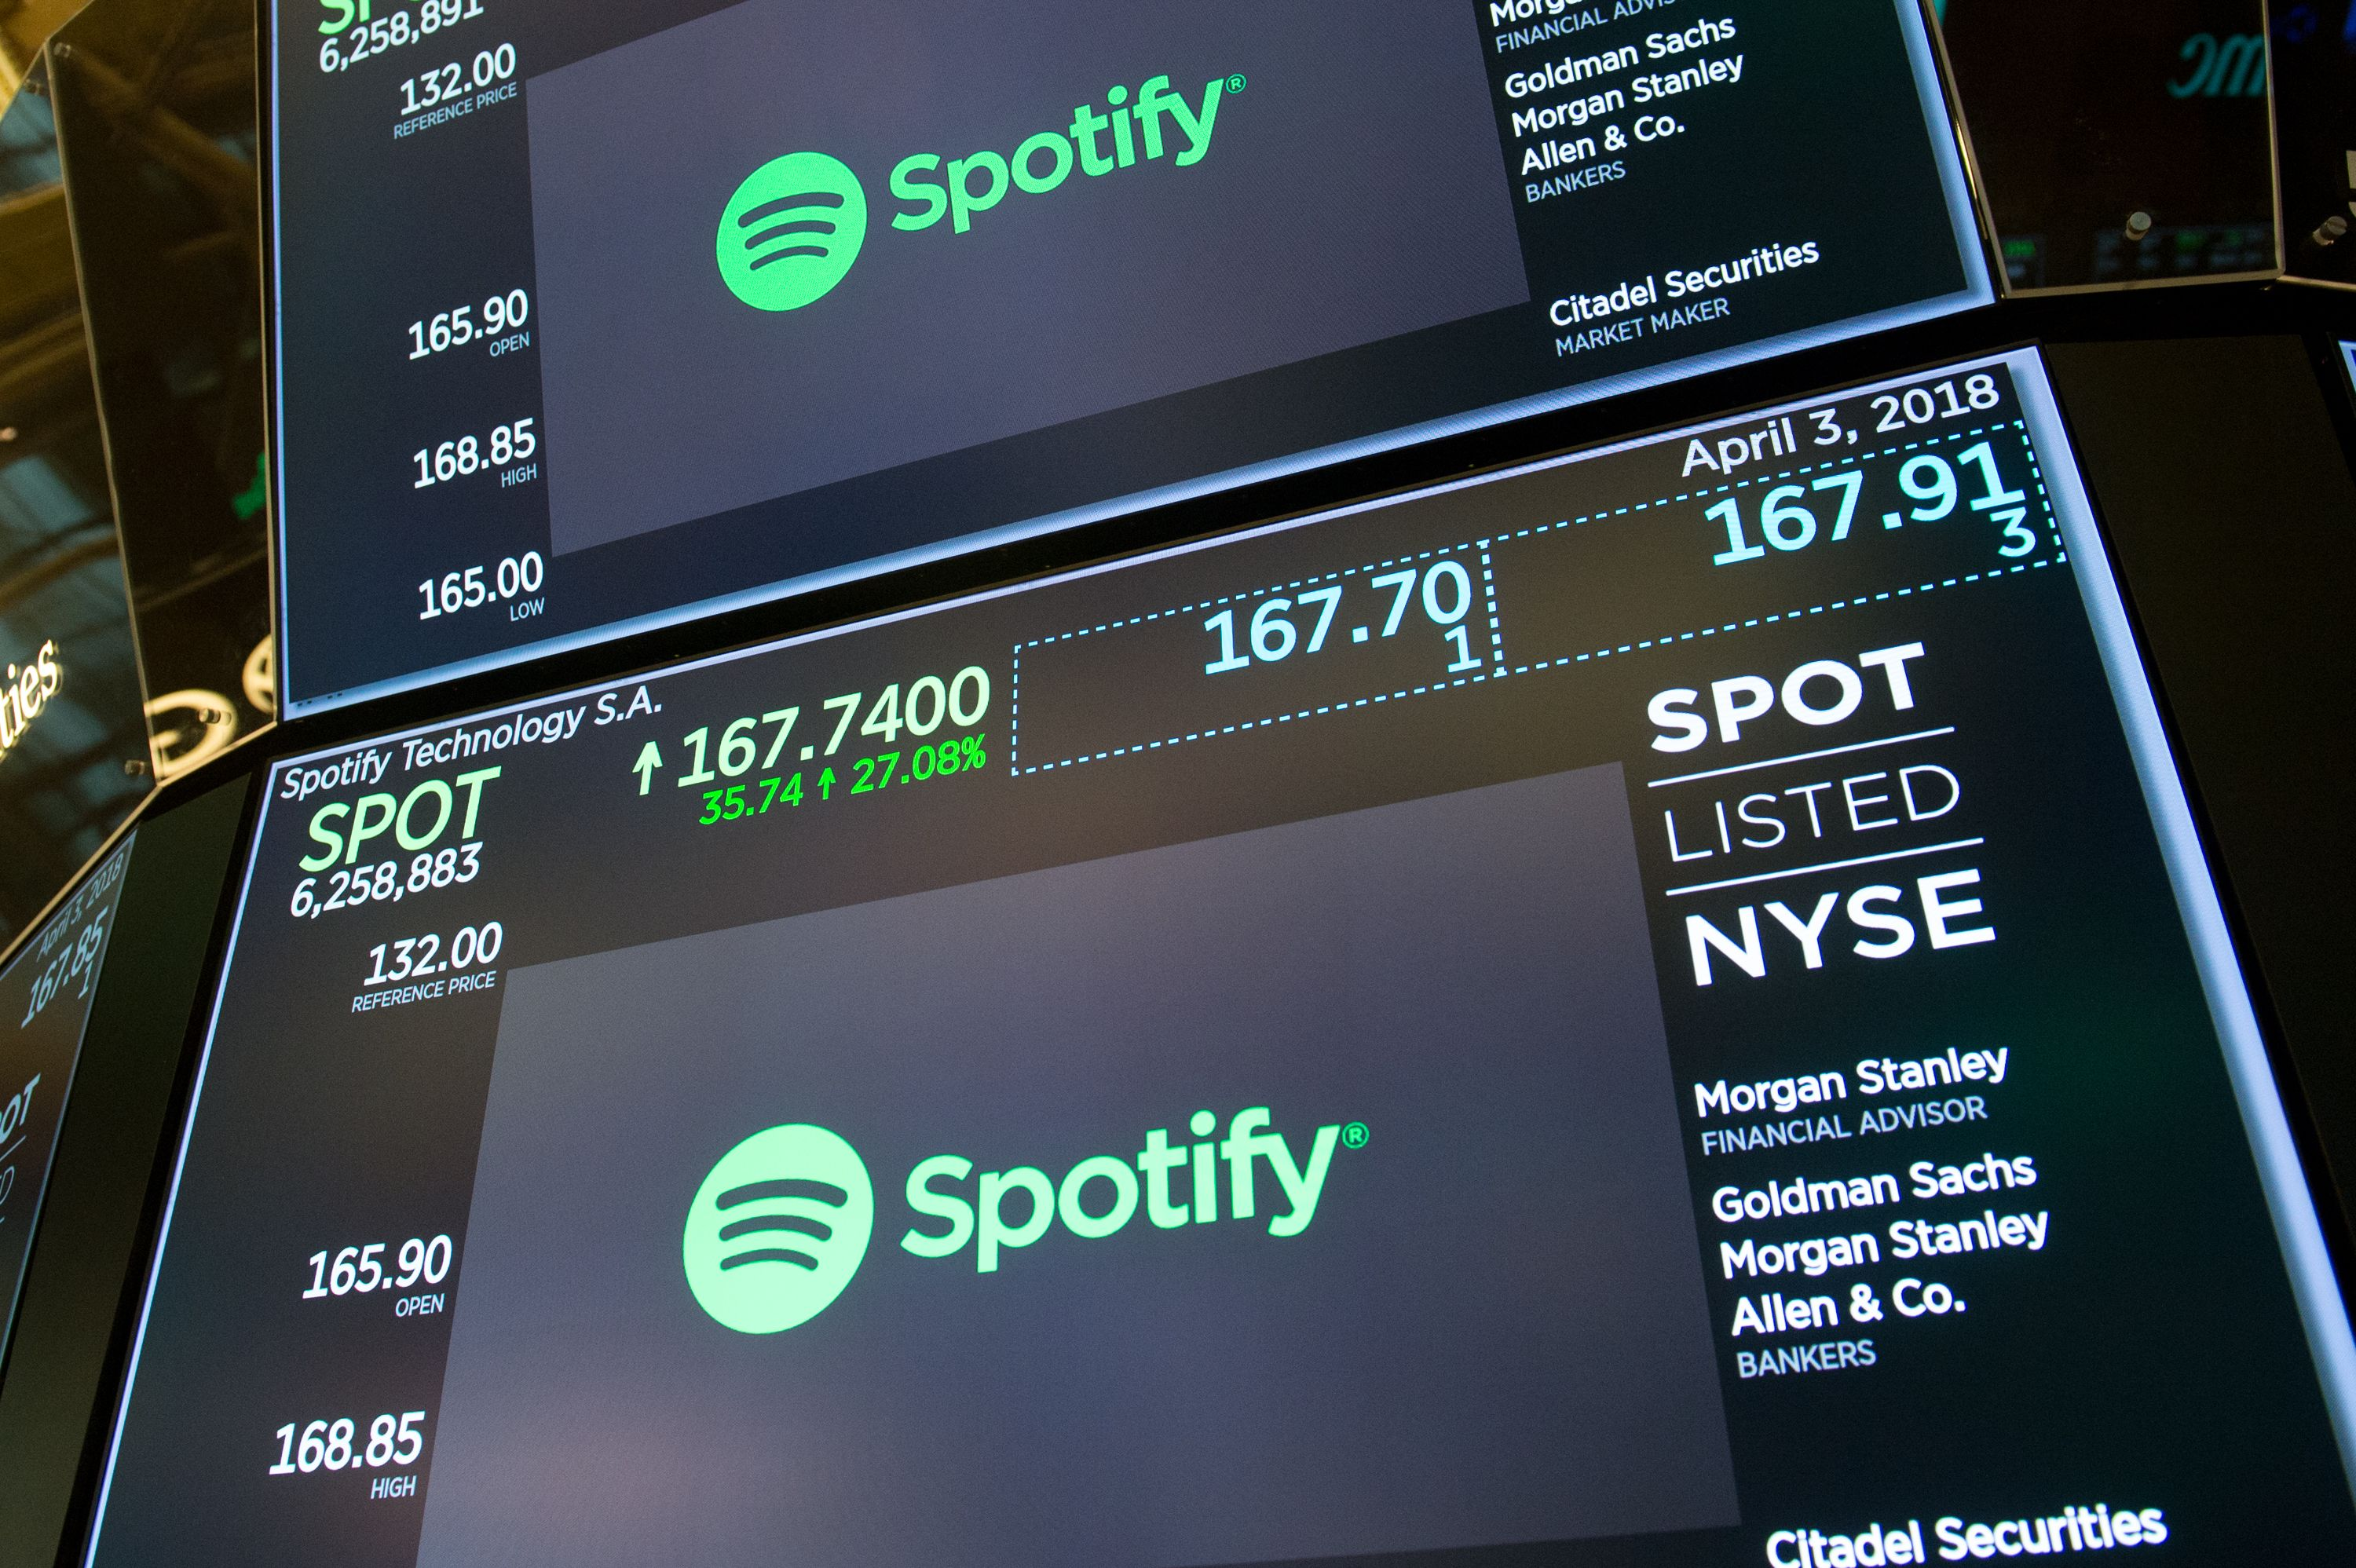 techcrunch.com - Jon Russell - Spotify says it paid $340M to buy Gimlet and Anchor